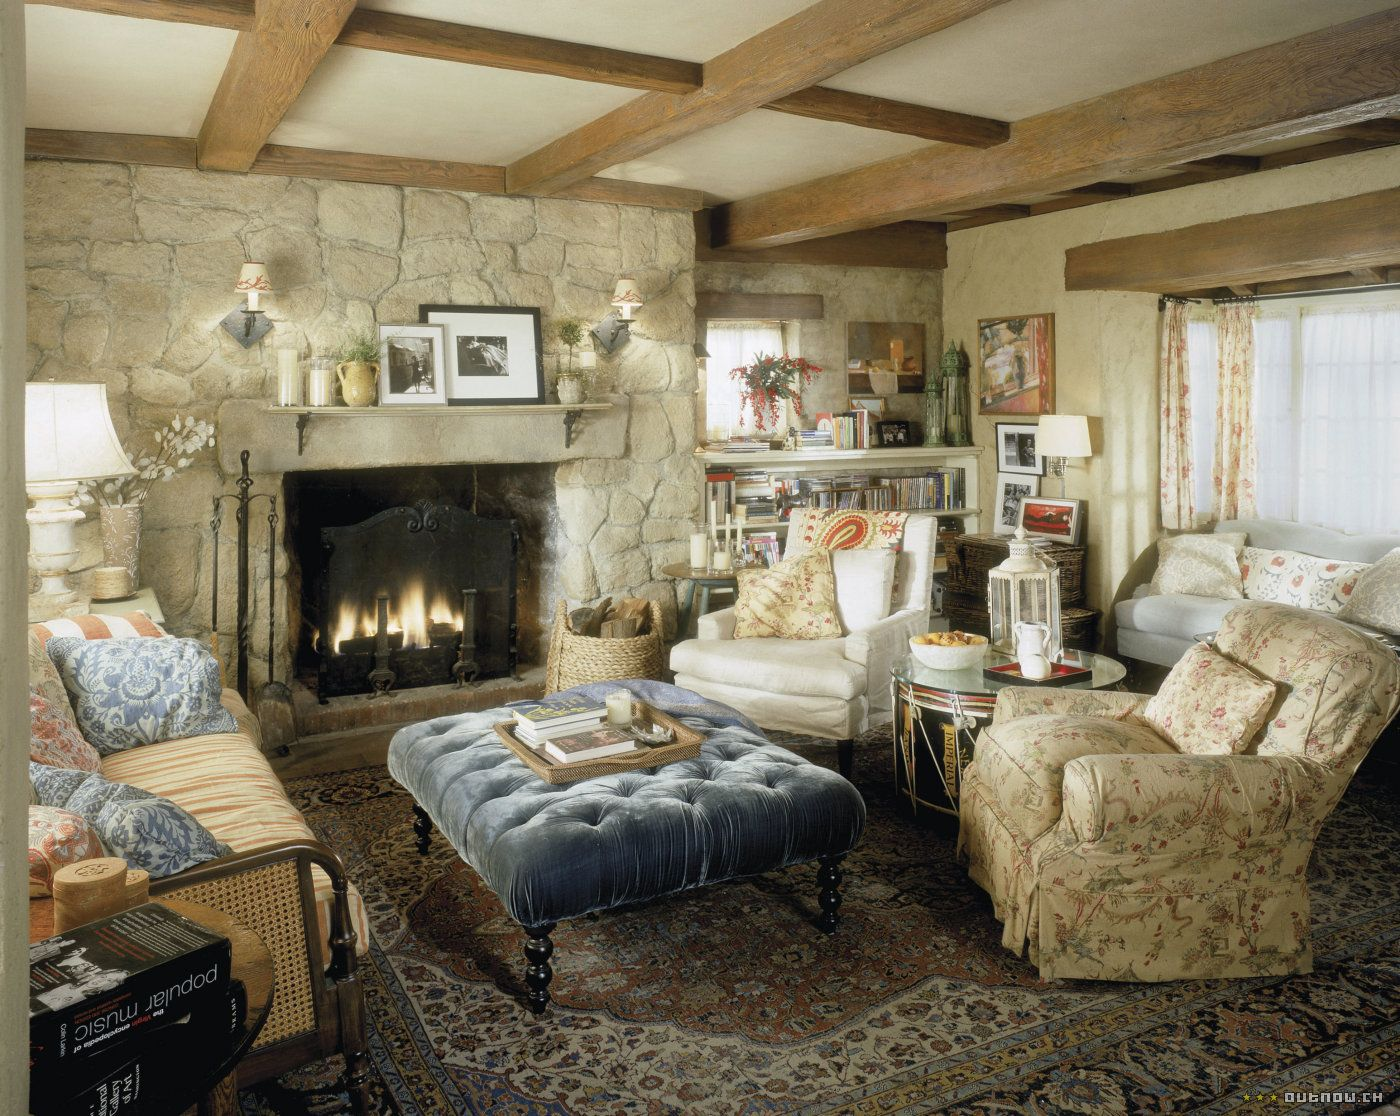 Living Room Country Cottage Living Room Ideas 1000 images about country cottage style decor on pinterest living rooms fireplaces and family rooms